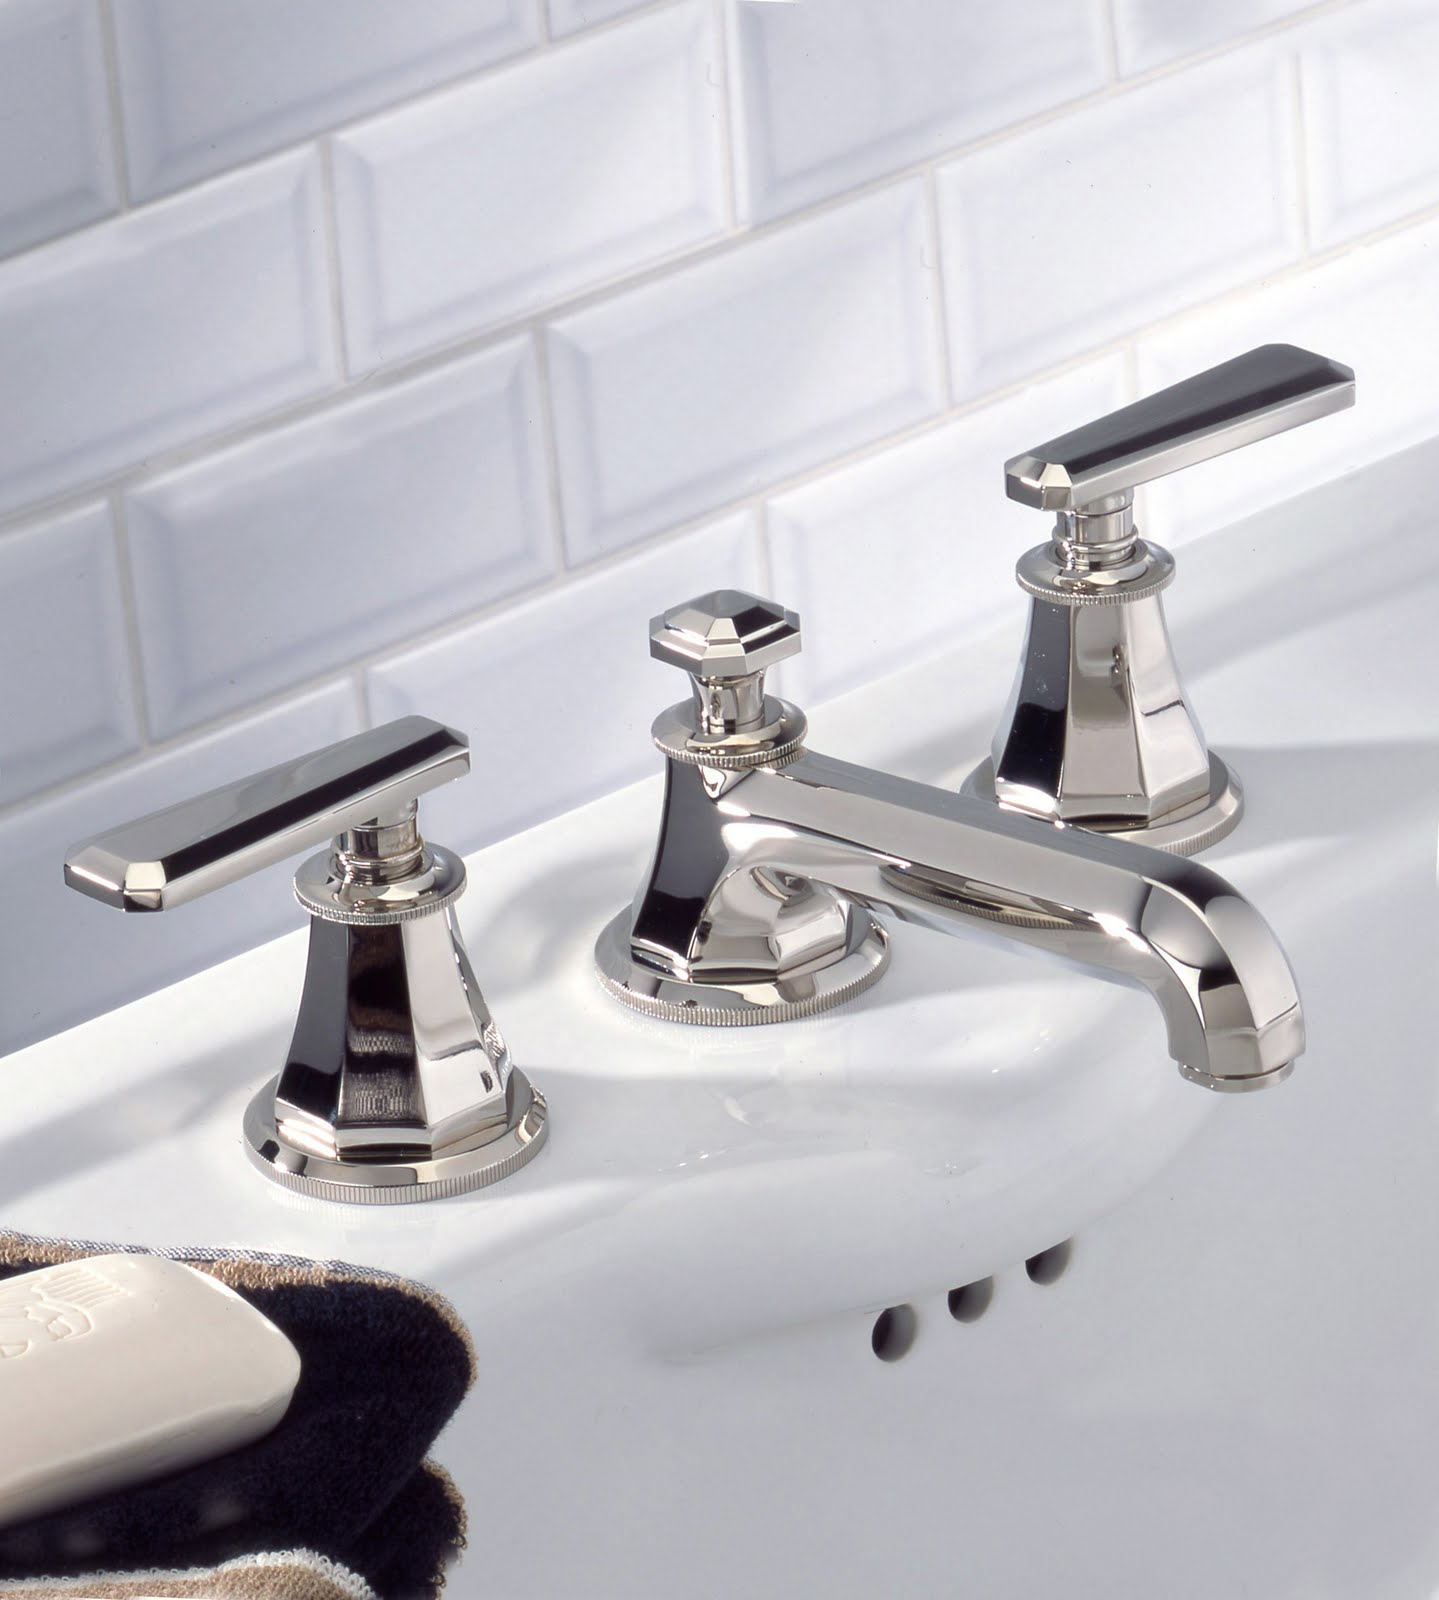 Art deco bathroom faucets - This Beautiful Art Deco Faucet Just Crossed My In Box And May Very Well Find Its Way Into My Next Bathroom It Comes From A Company Called Thg